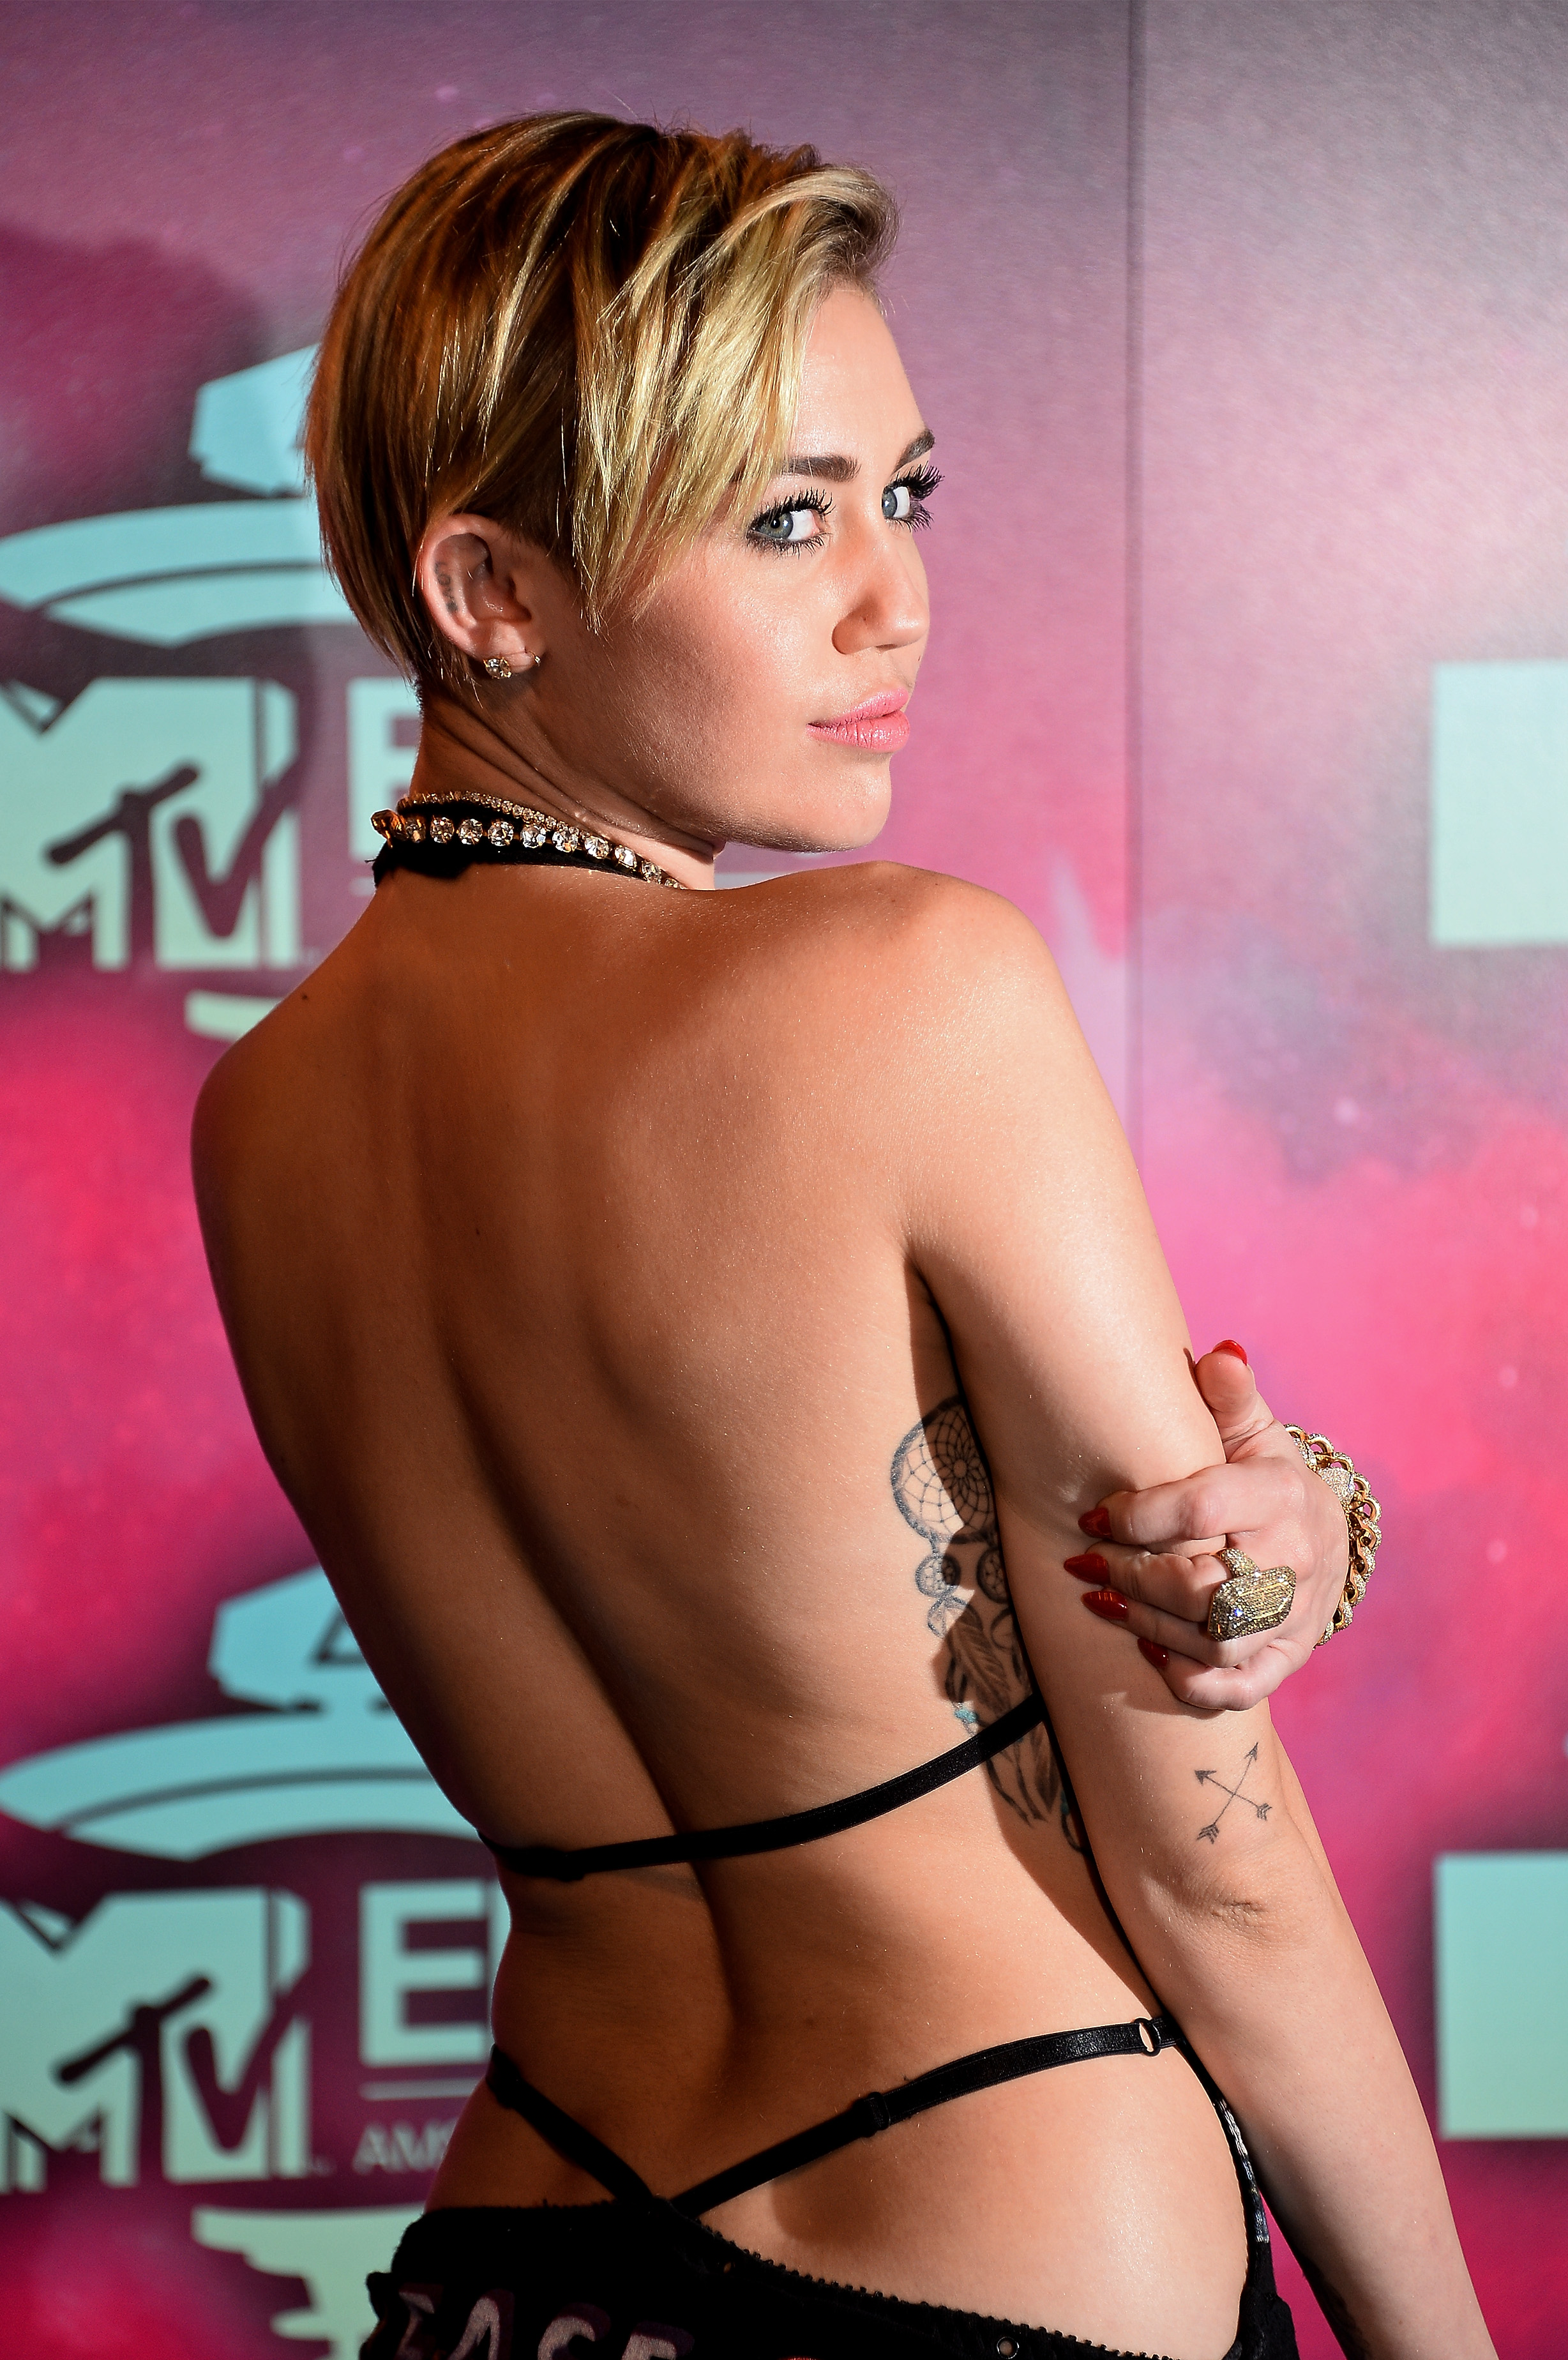 Mileycyrus porn pictures